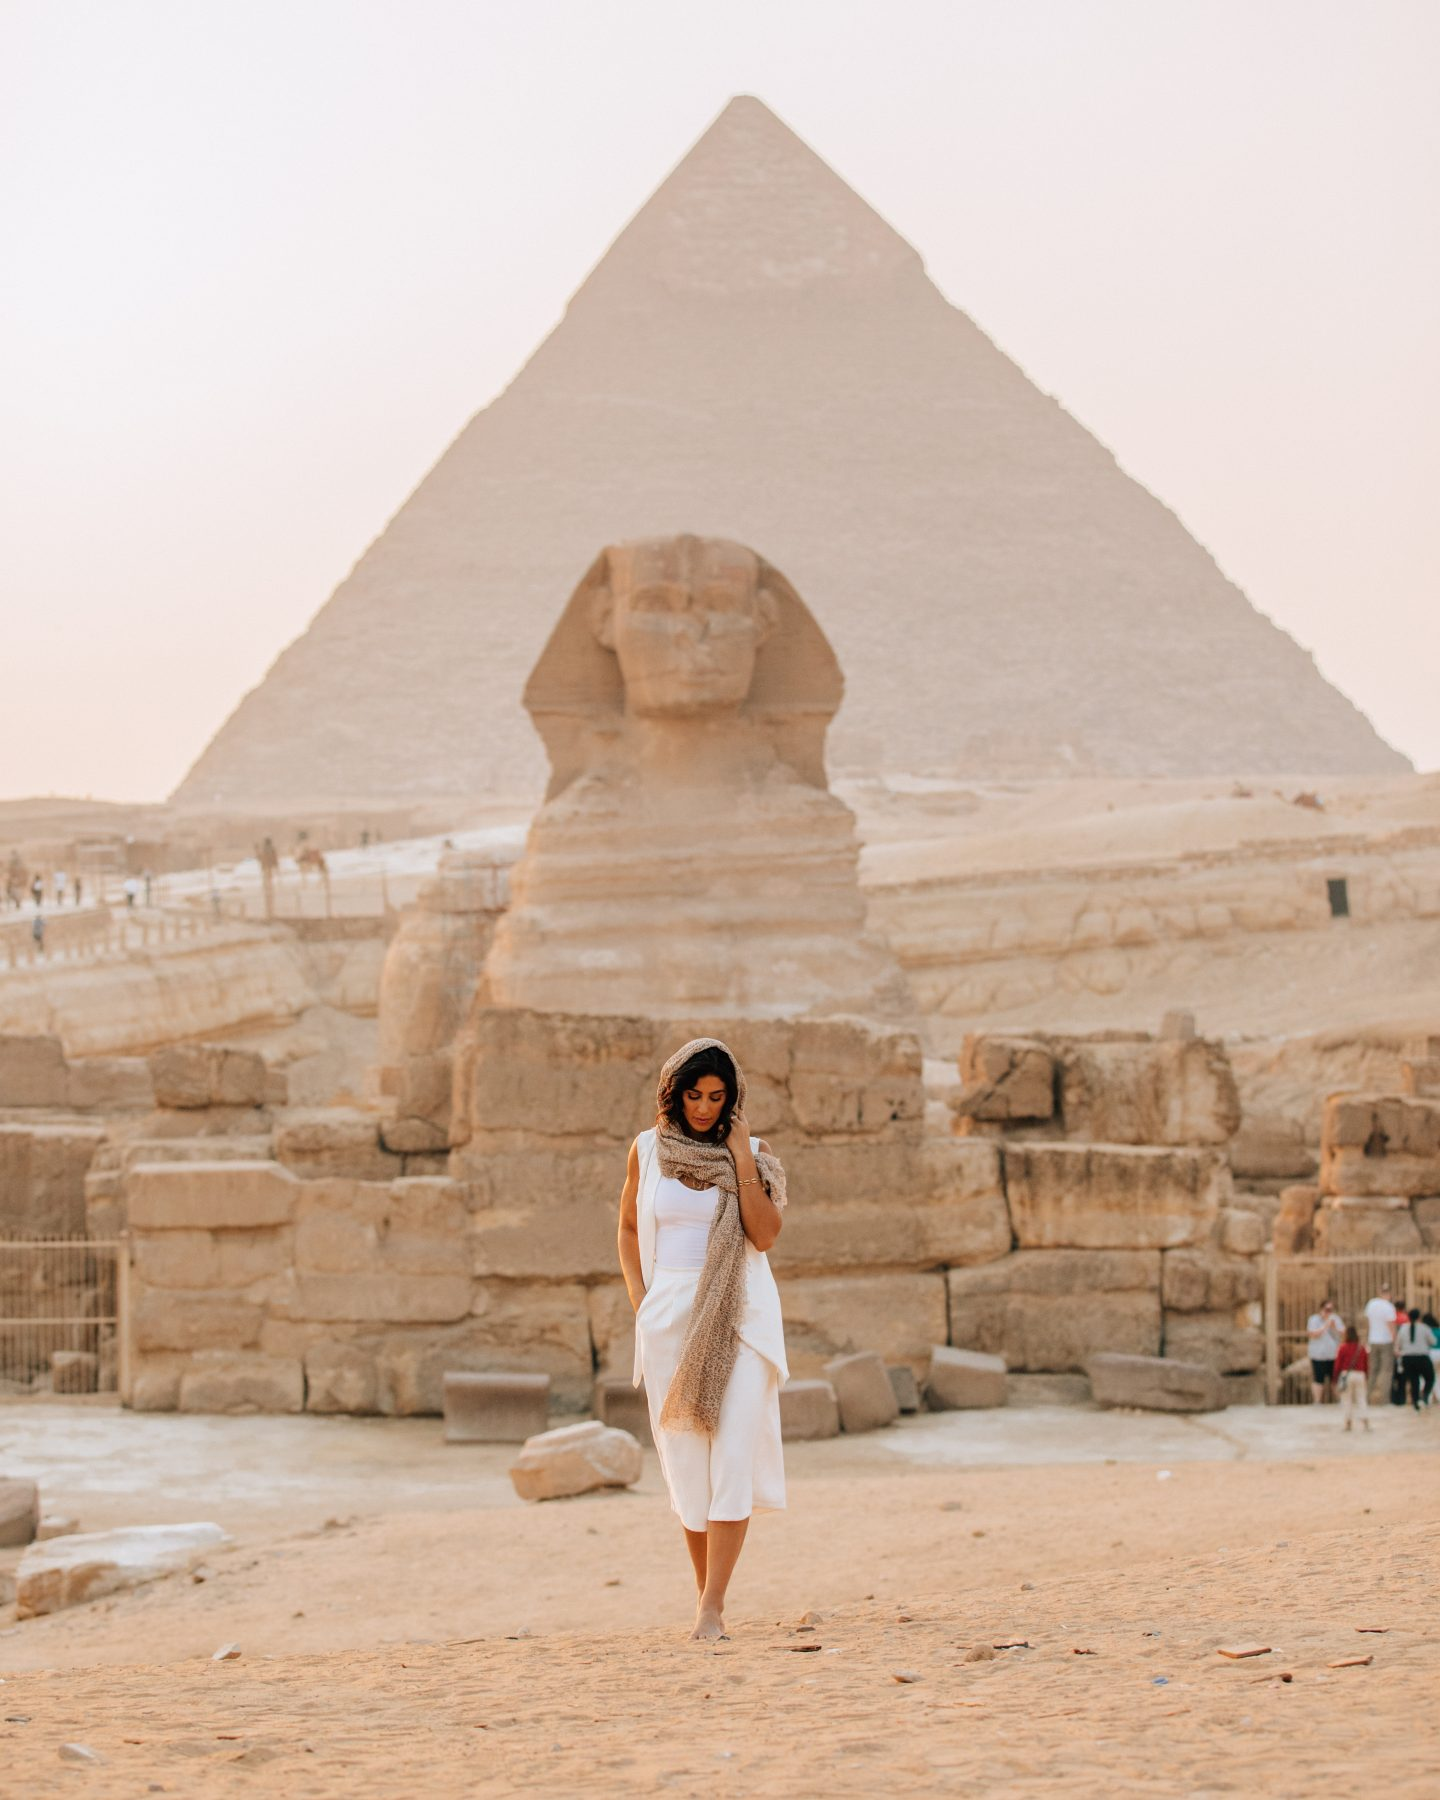 A woman in front of the Great Pyramid of Giza and the Sphinx in Cairo, Egypt